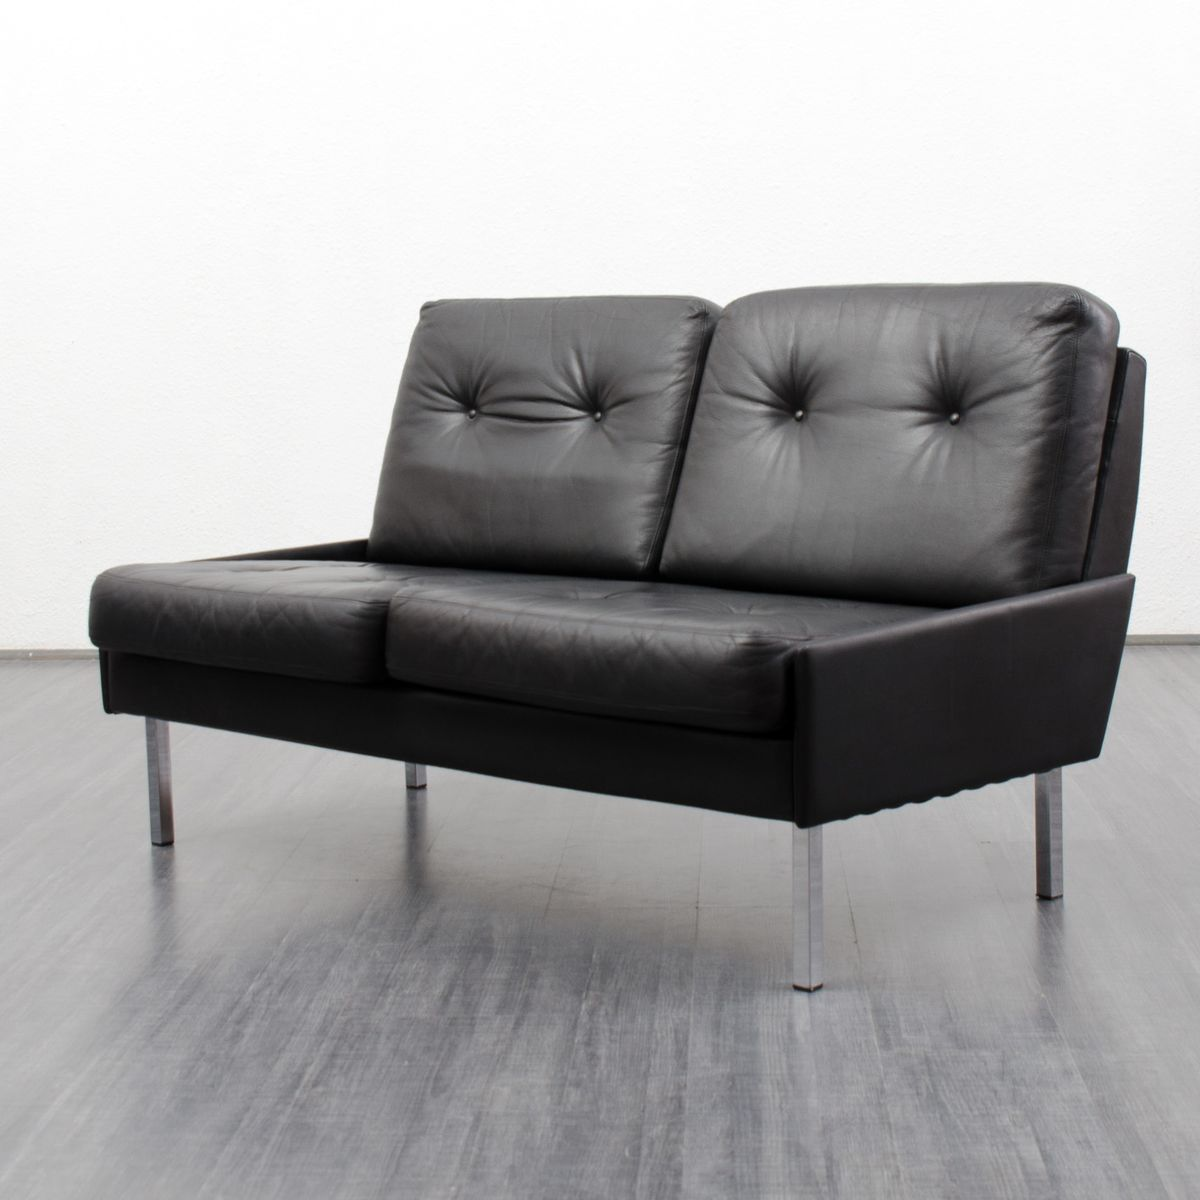 2 seater black leather sofa 1960s for sale at pamono for Leather sofa 7 seater